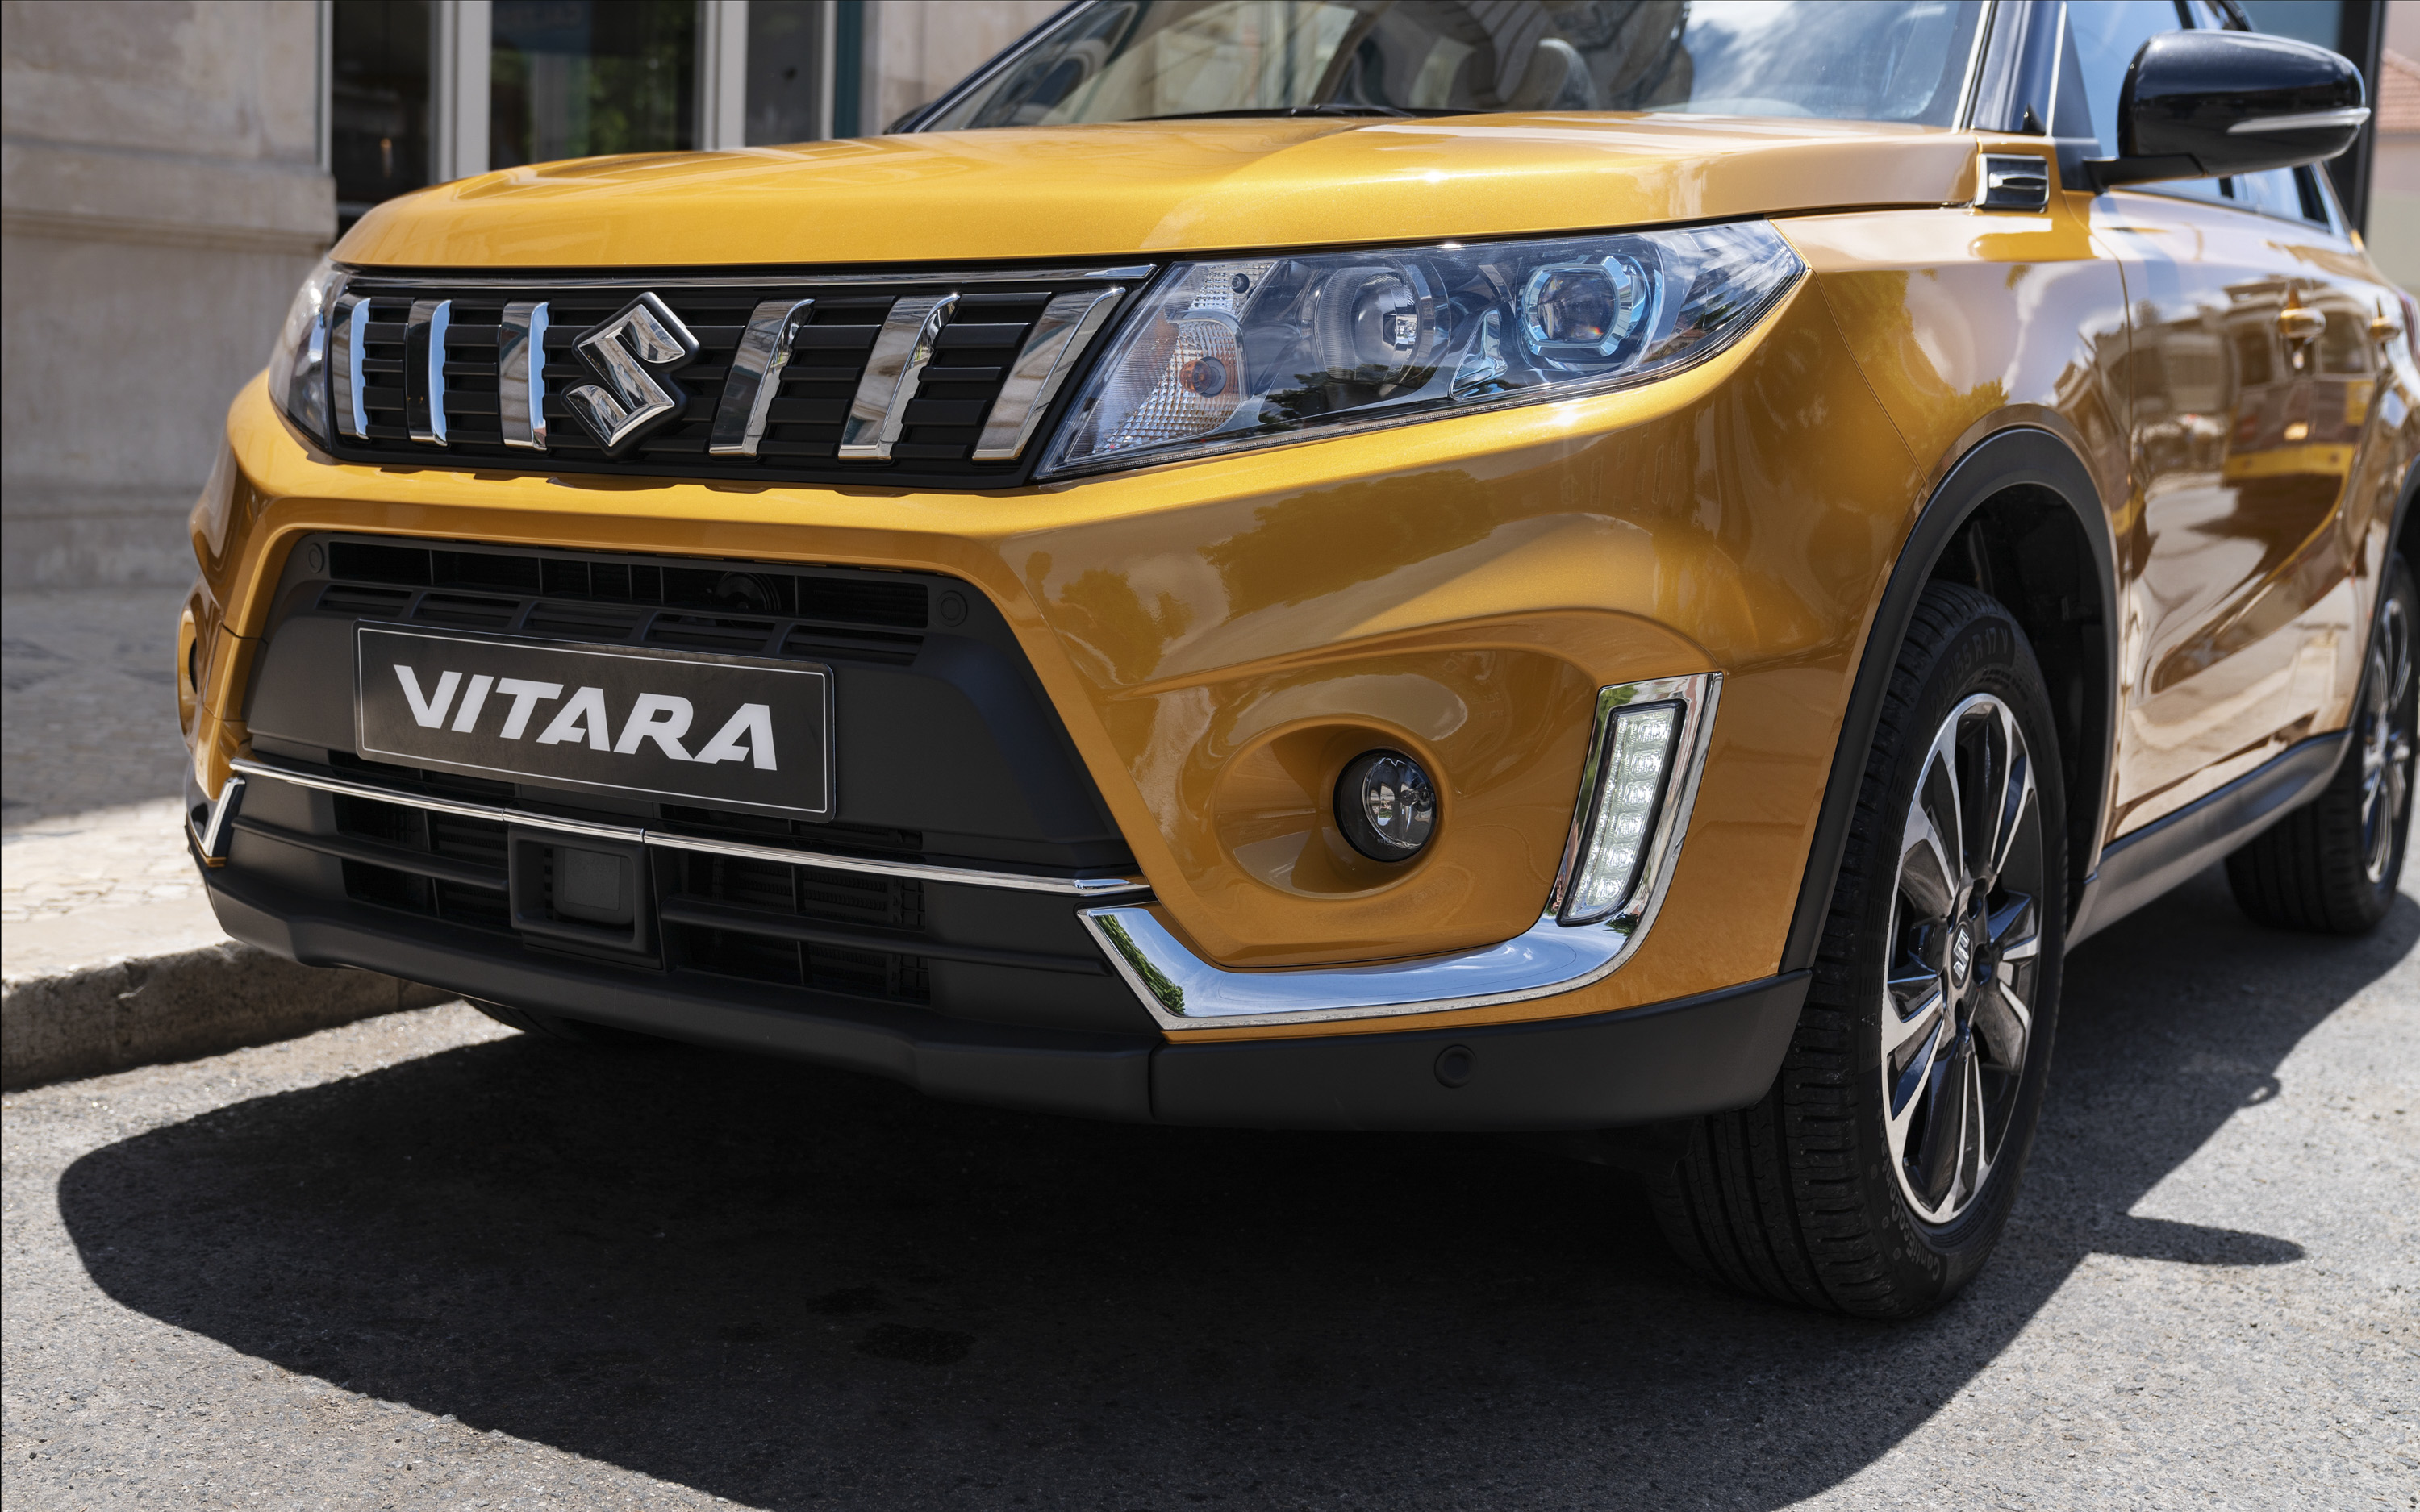 2019 Vitara Facelift Looks Aggressive In These New Images Top Speed